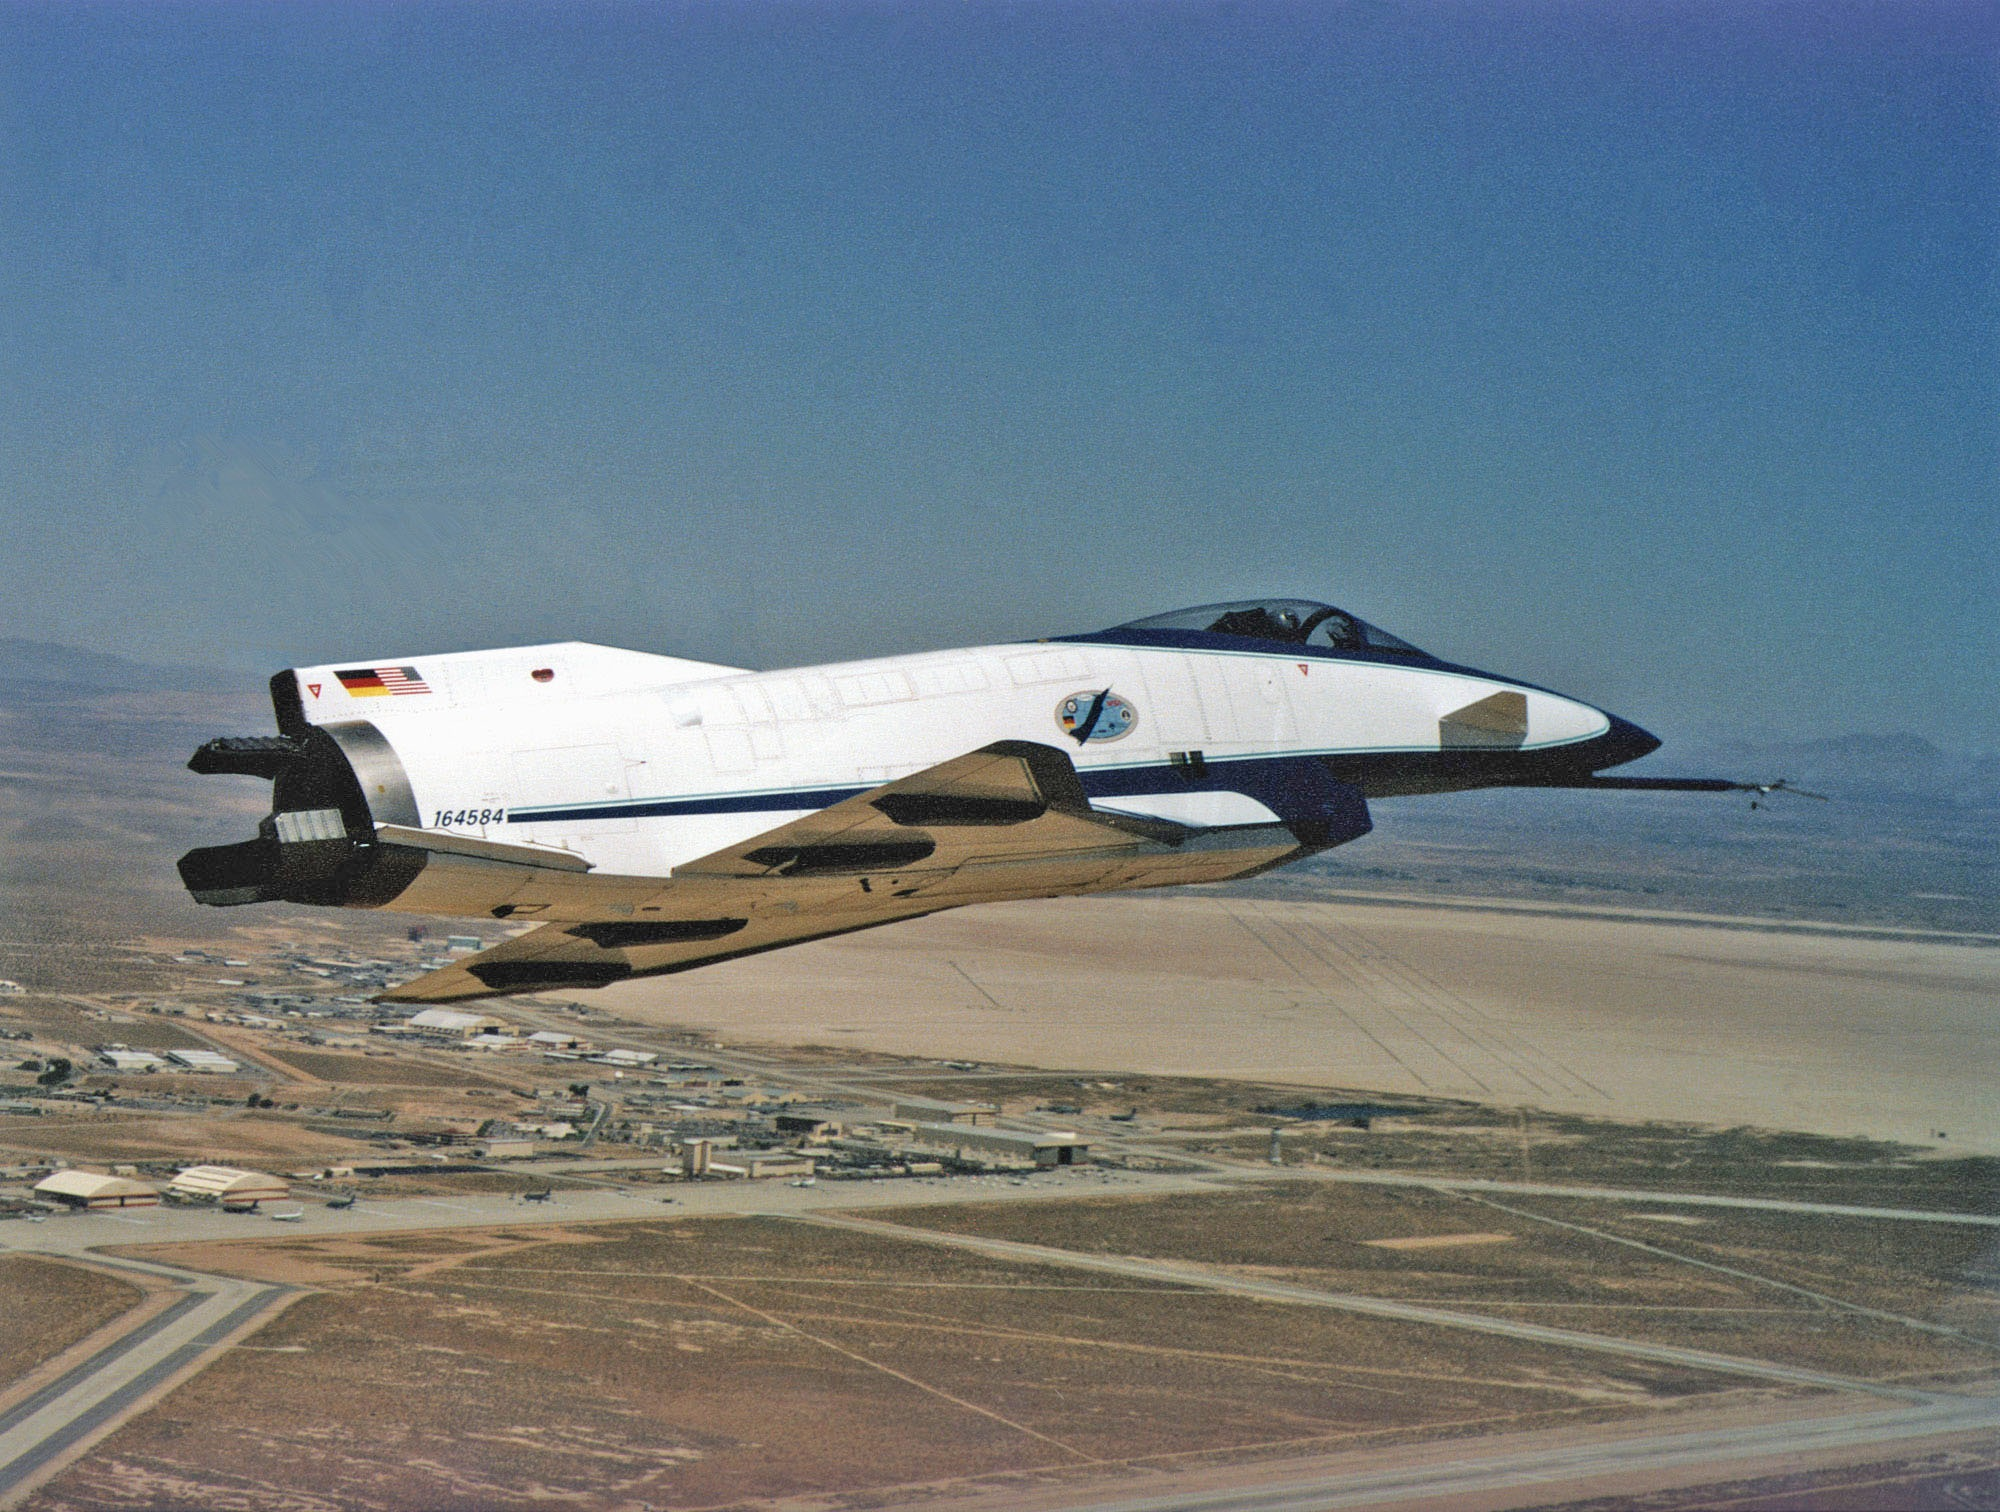 http://upload.wikimedia.org/wikipedia/commons/a/a9/X-31_Quasi-Tailless_over_Edwards_AFB.jpg